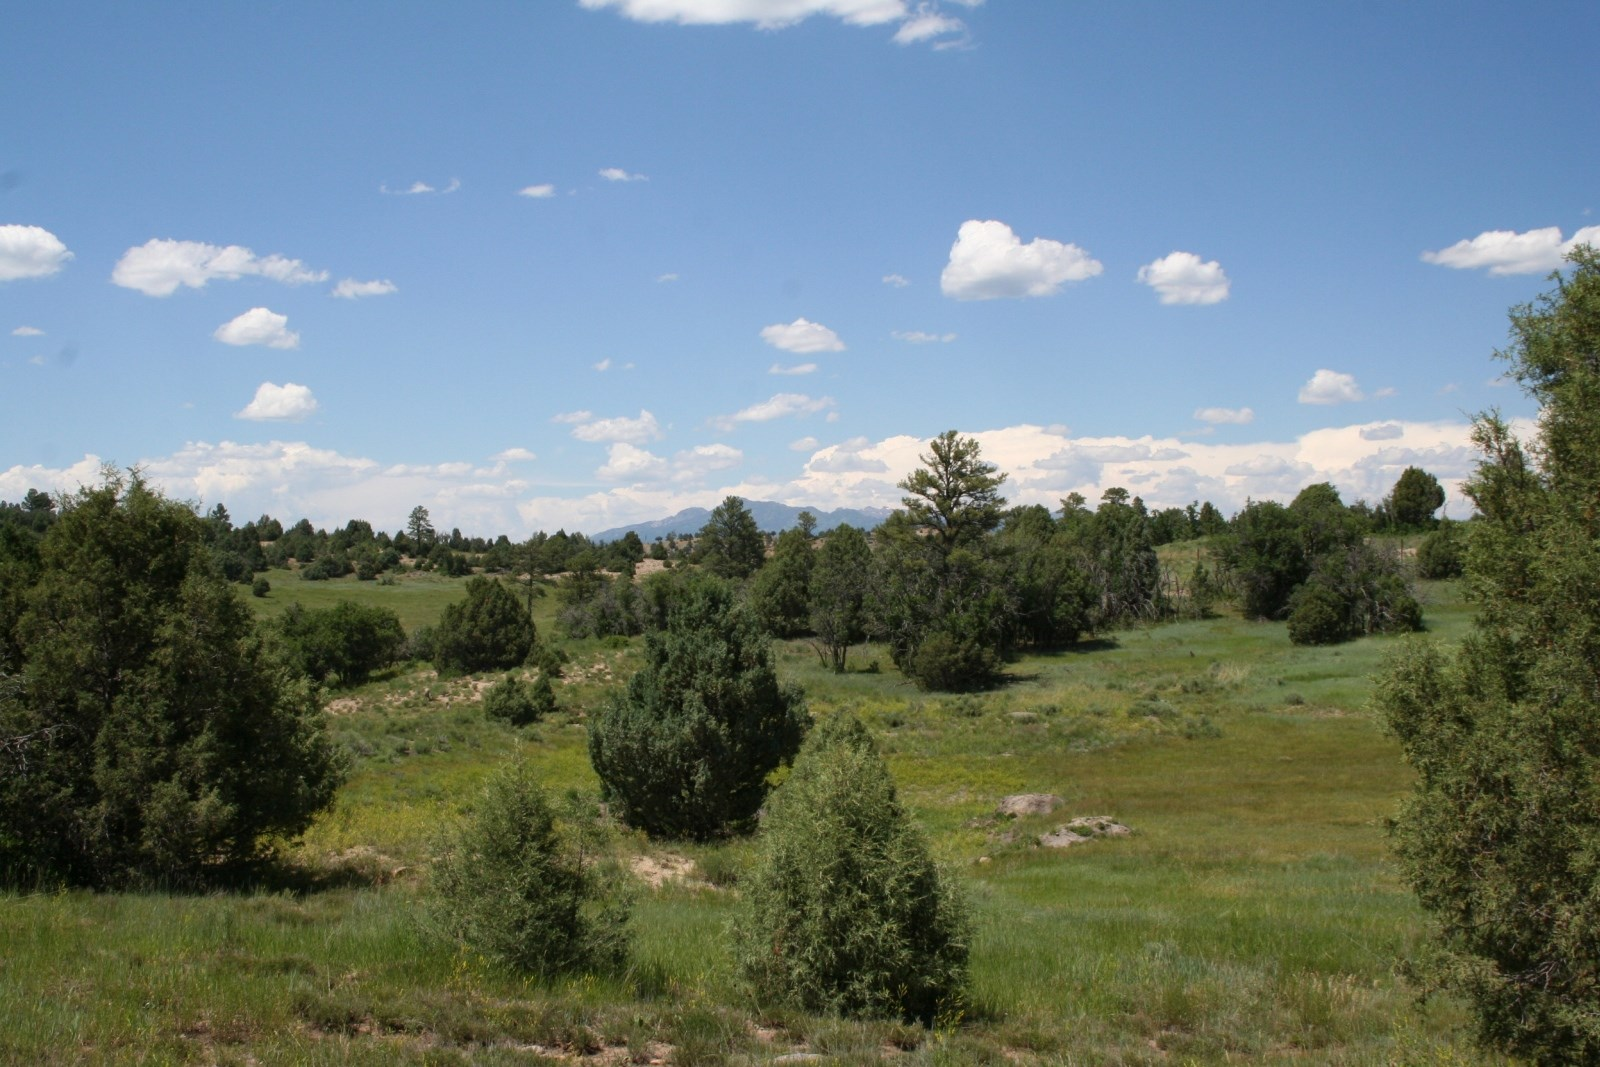 PRIME ACREAGE NORTHERN NM MOUNTAINS NR CHAMA FOR SALE